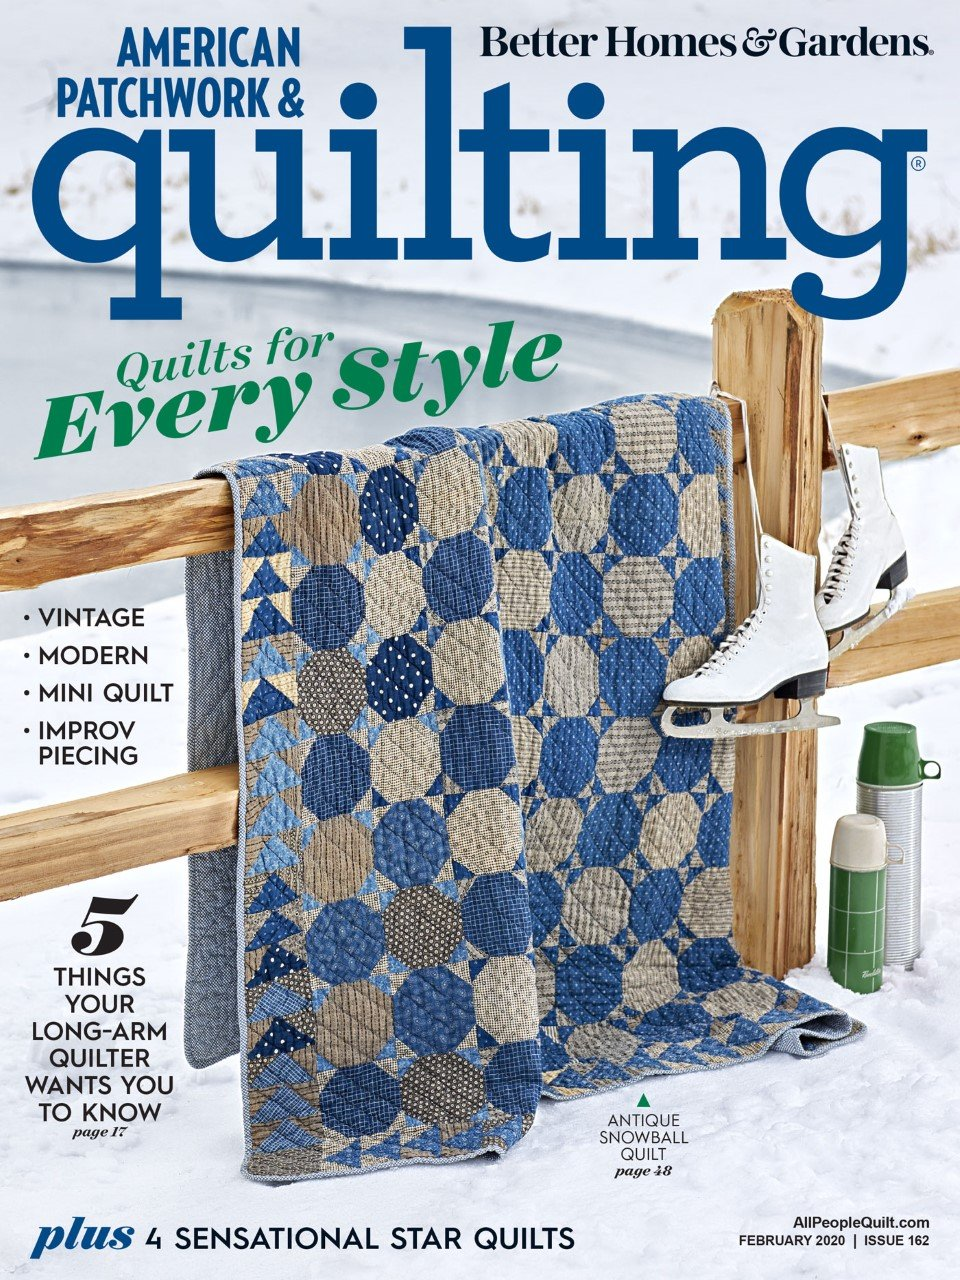 American Patchwork & Quilting, February 2020